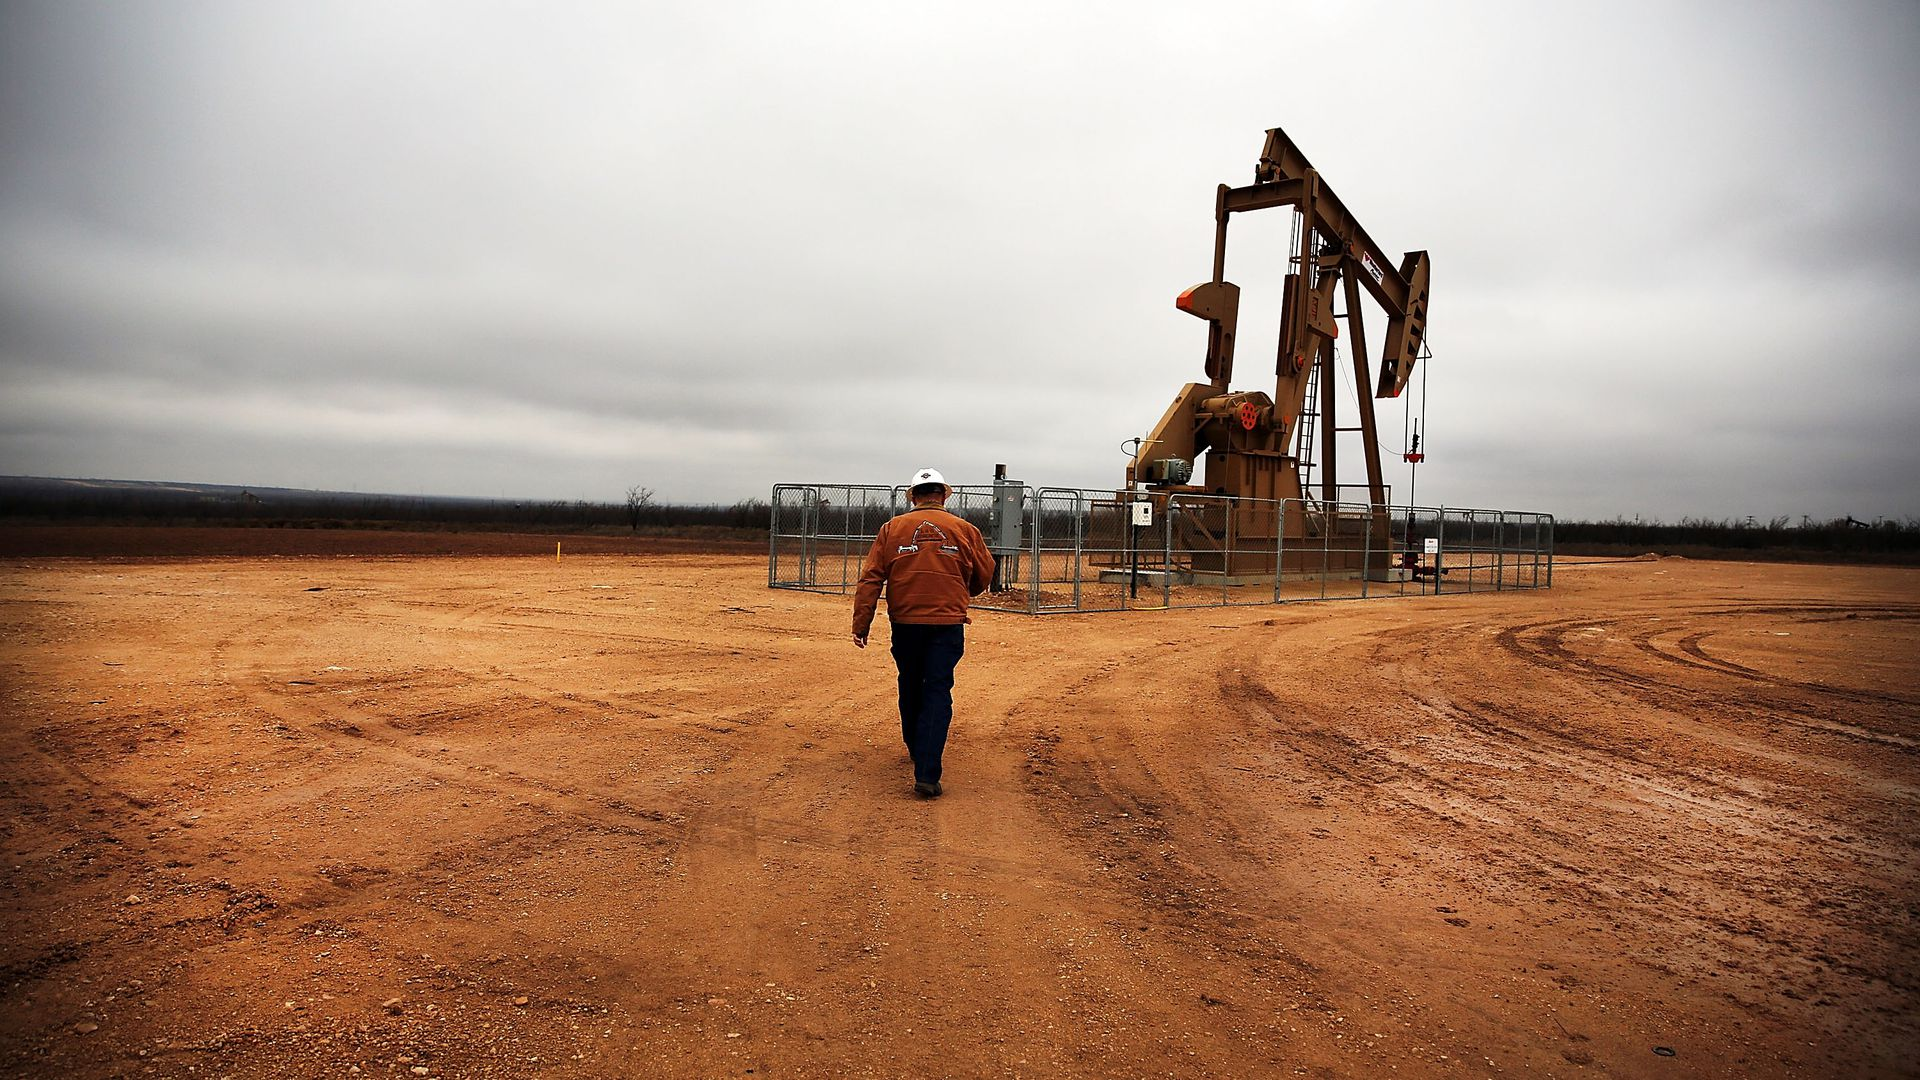 A man walks towards an oil well alone.